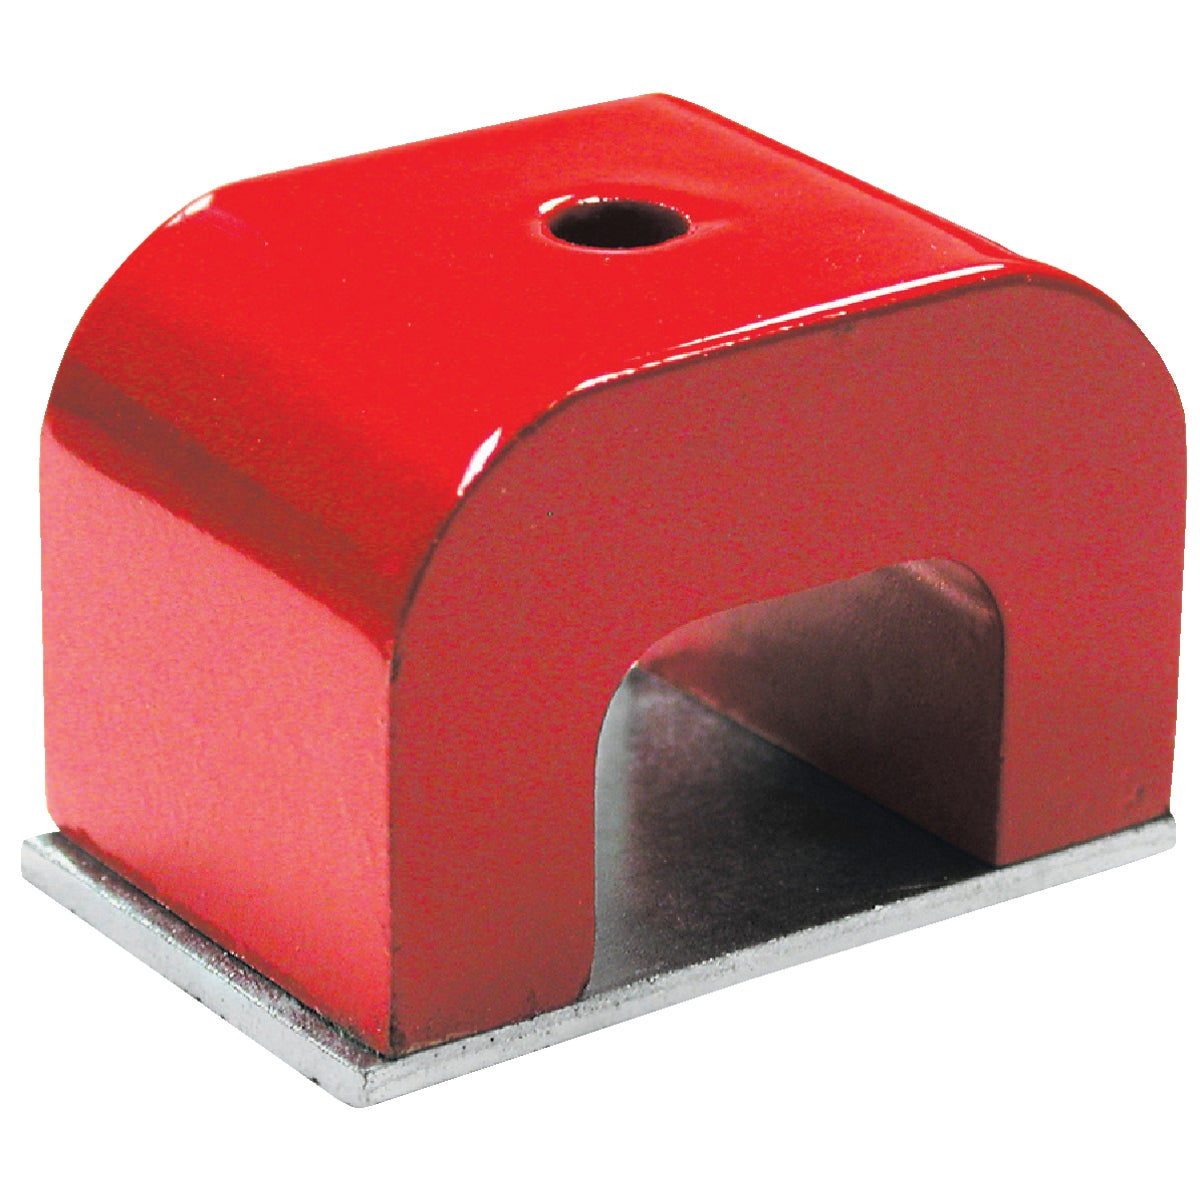 22LB HORSESHOE MAGNET - 07271 by Master Magnetics